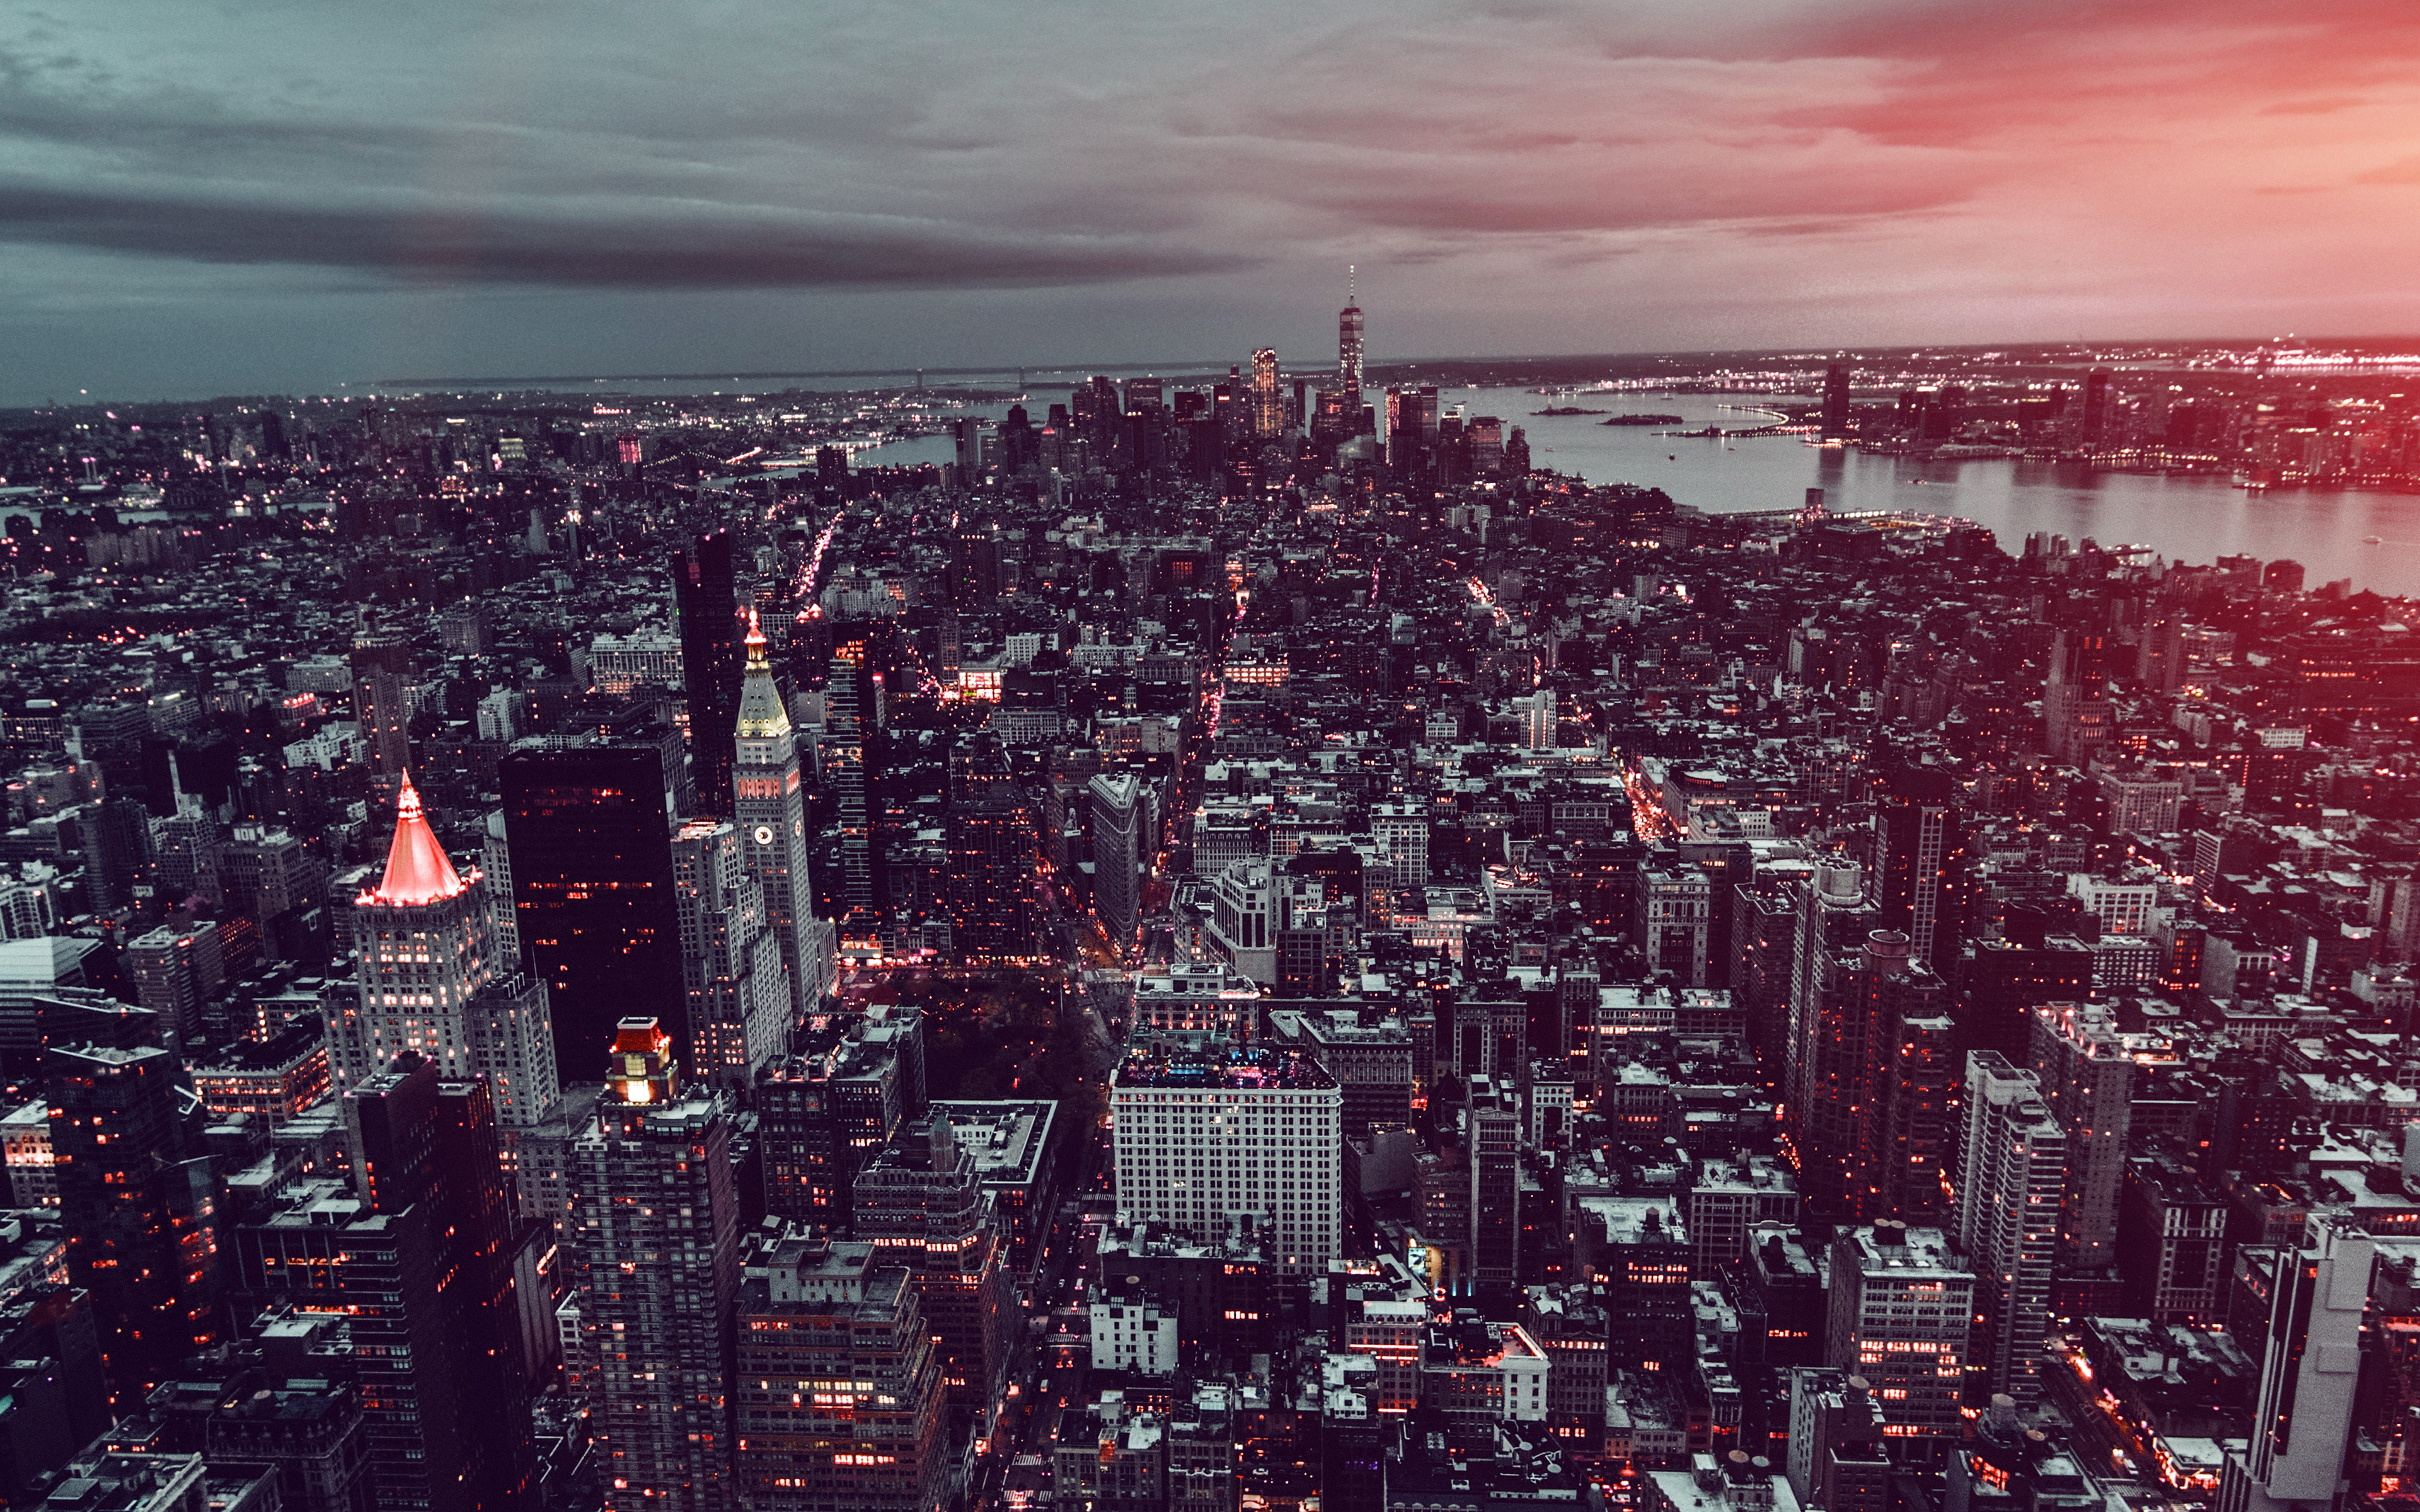 Wallpaper For Desktop Laptop Ns06 Unsplash City Sky